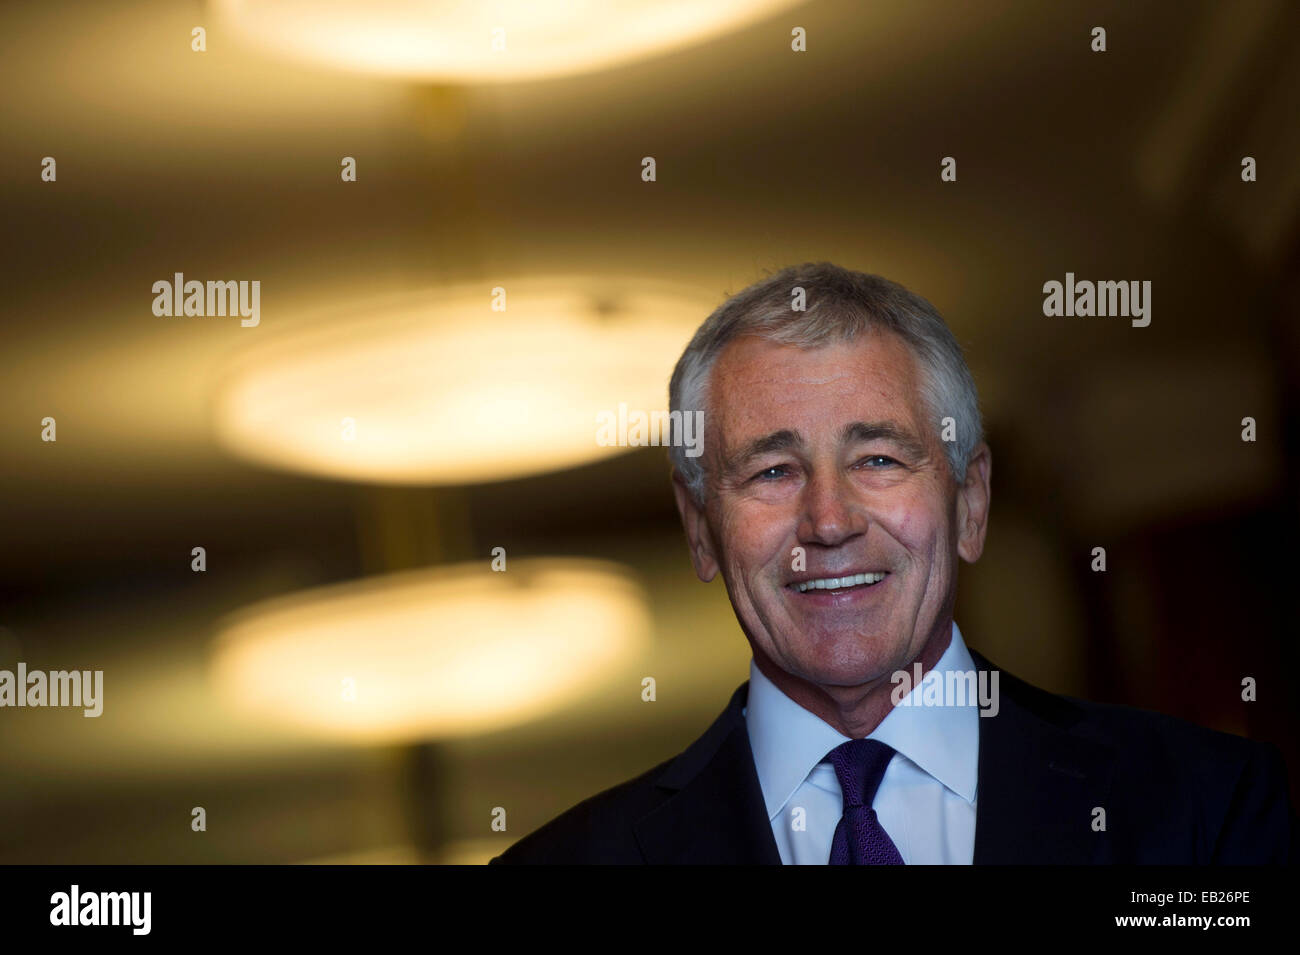 US Secretary of Defense Chuck Hagel smiles as he prepares to greet New Zealand Minister of Defense Gerry Brownlee - Stock Image